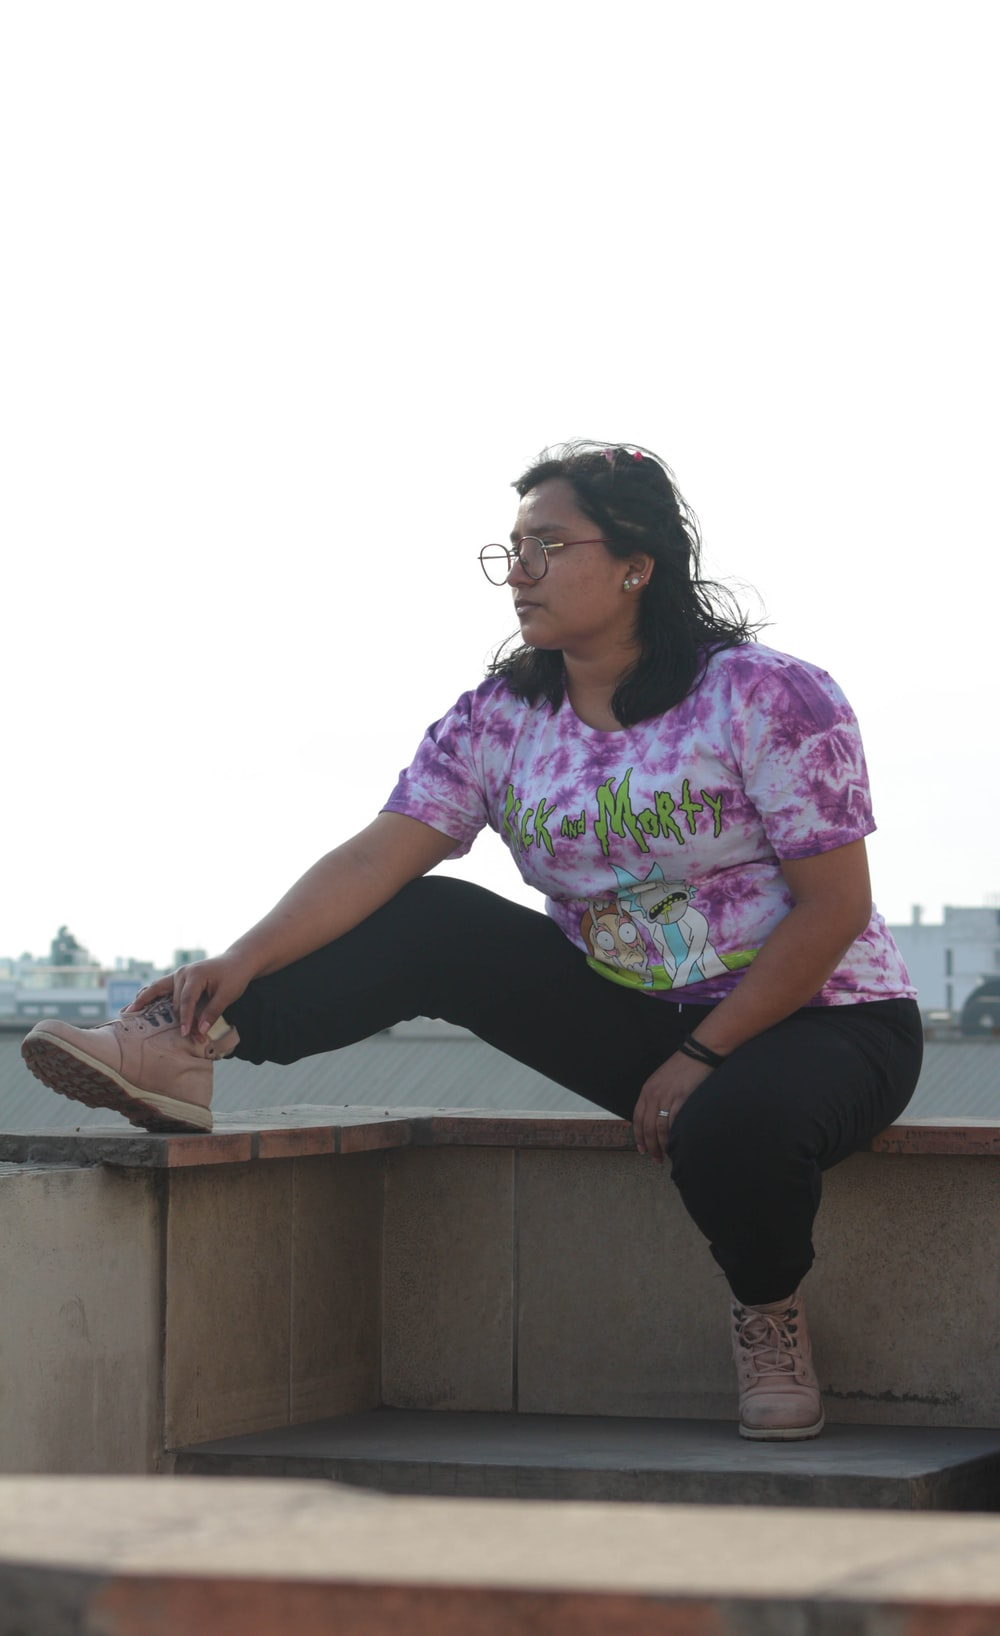 woman in purple and white floral shirt and black pants sitting on concrete bench during daytime